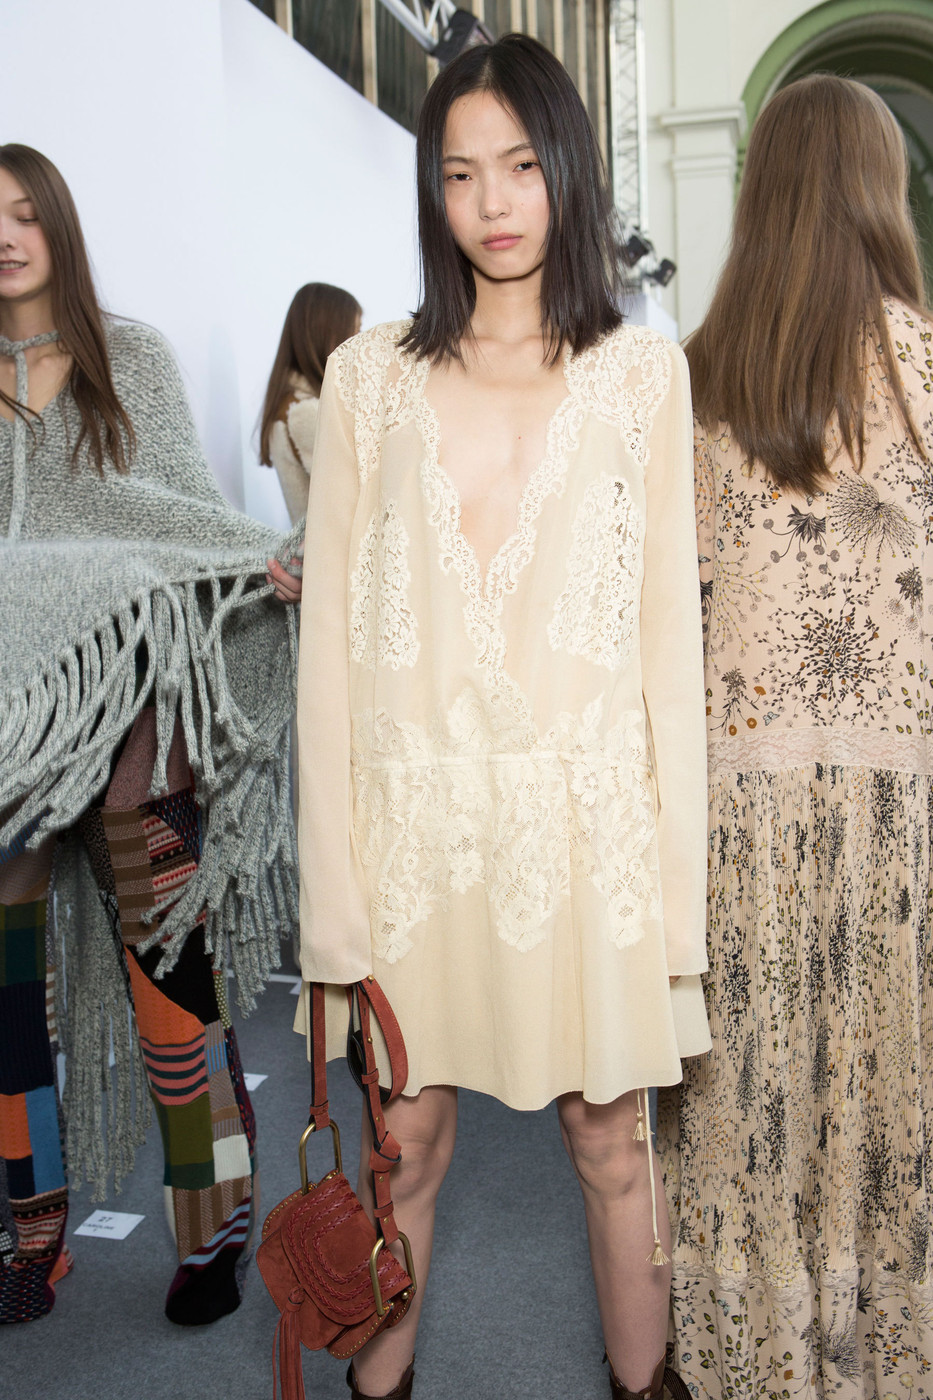 Chloe+Fall+2015+Backstage+3I2MX1oR9c3x.jpg